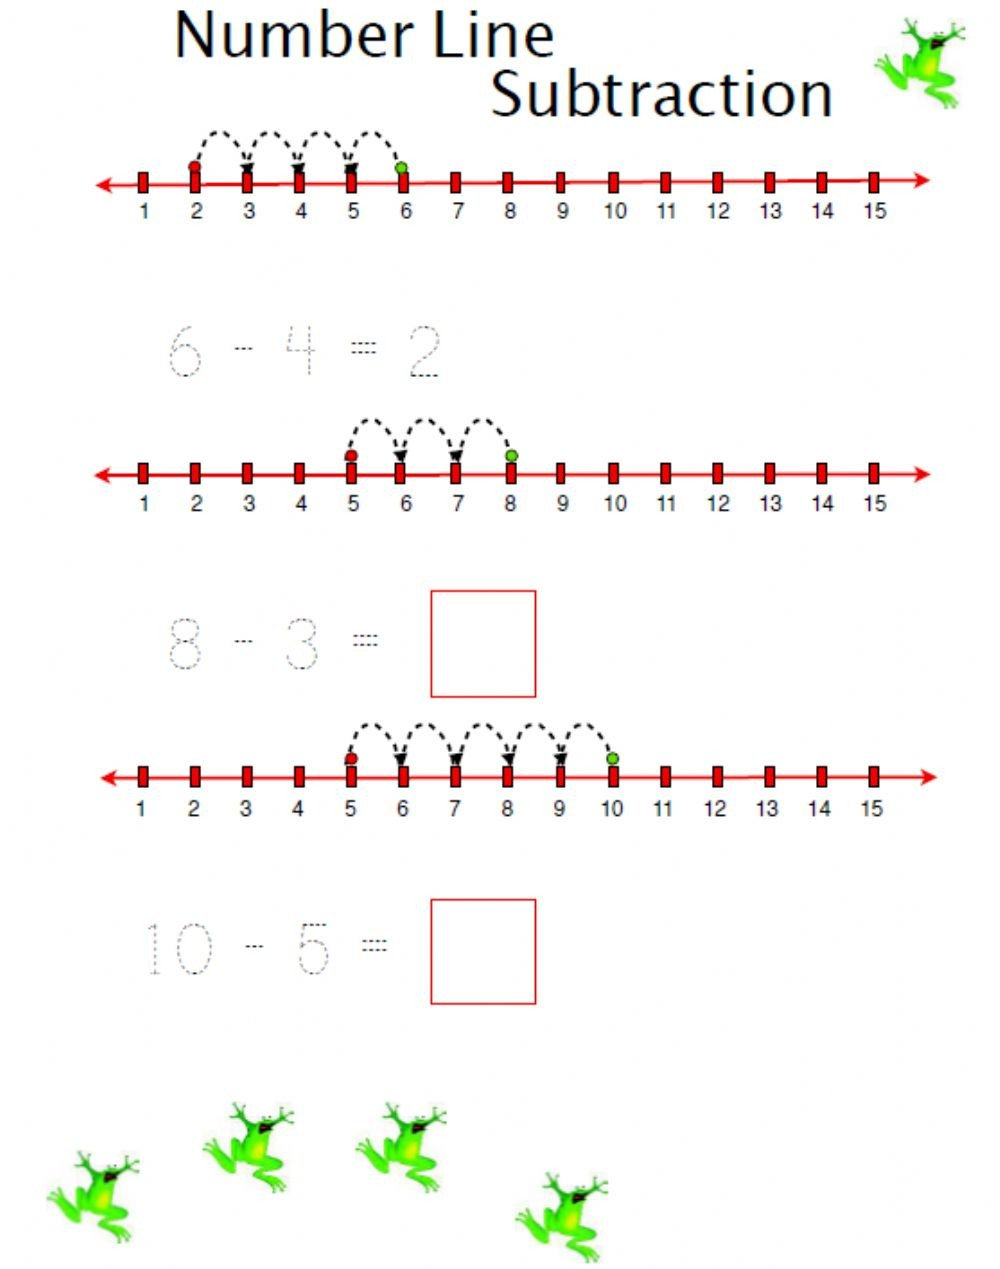 Number Line Subtraction Worksheet Number Line Subtraction Interactive Worksheet